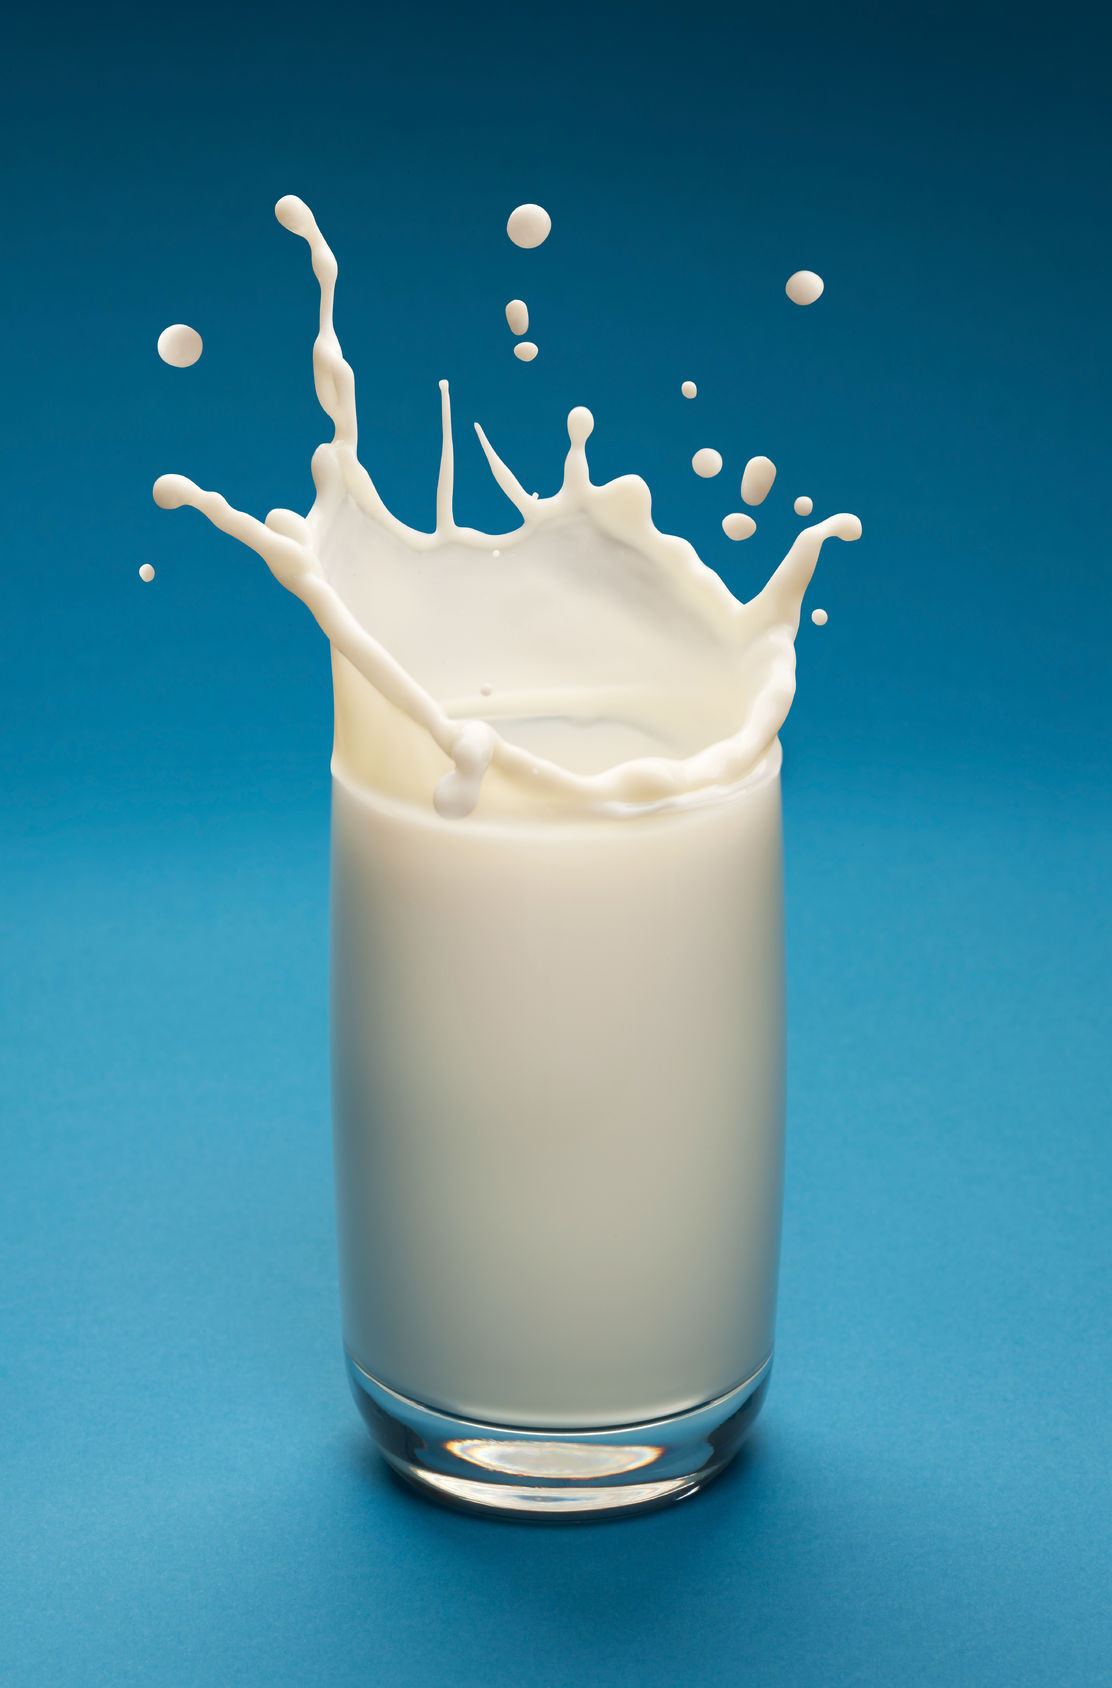 milk increases risk of breast cancer